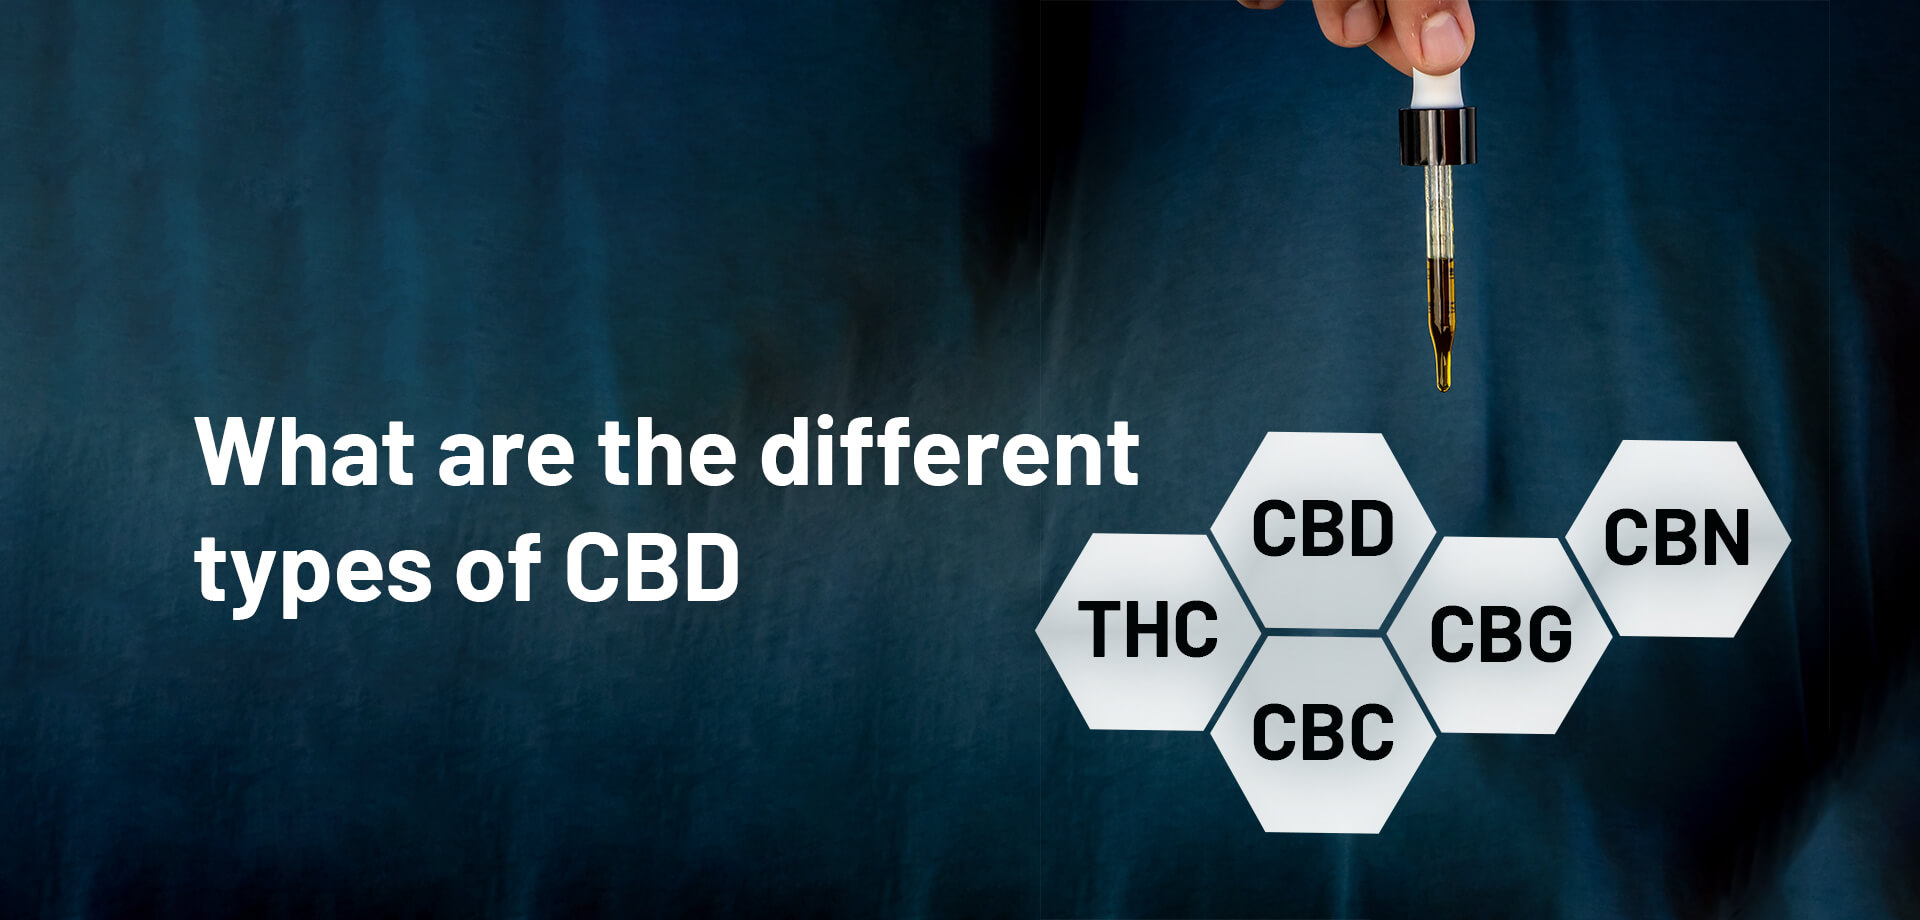 What are the different types of CBD?